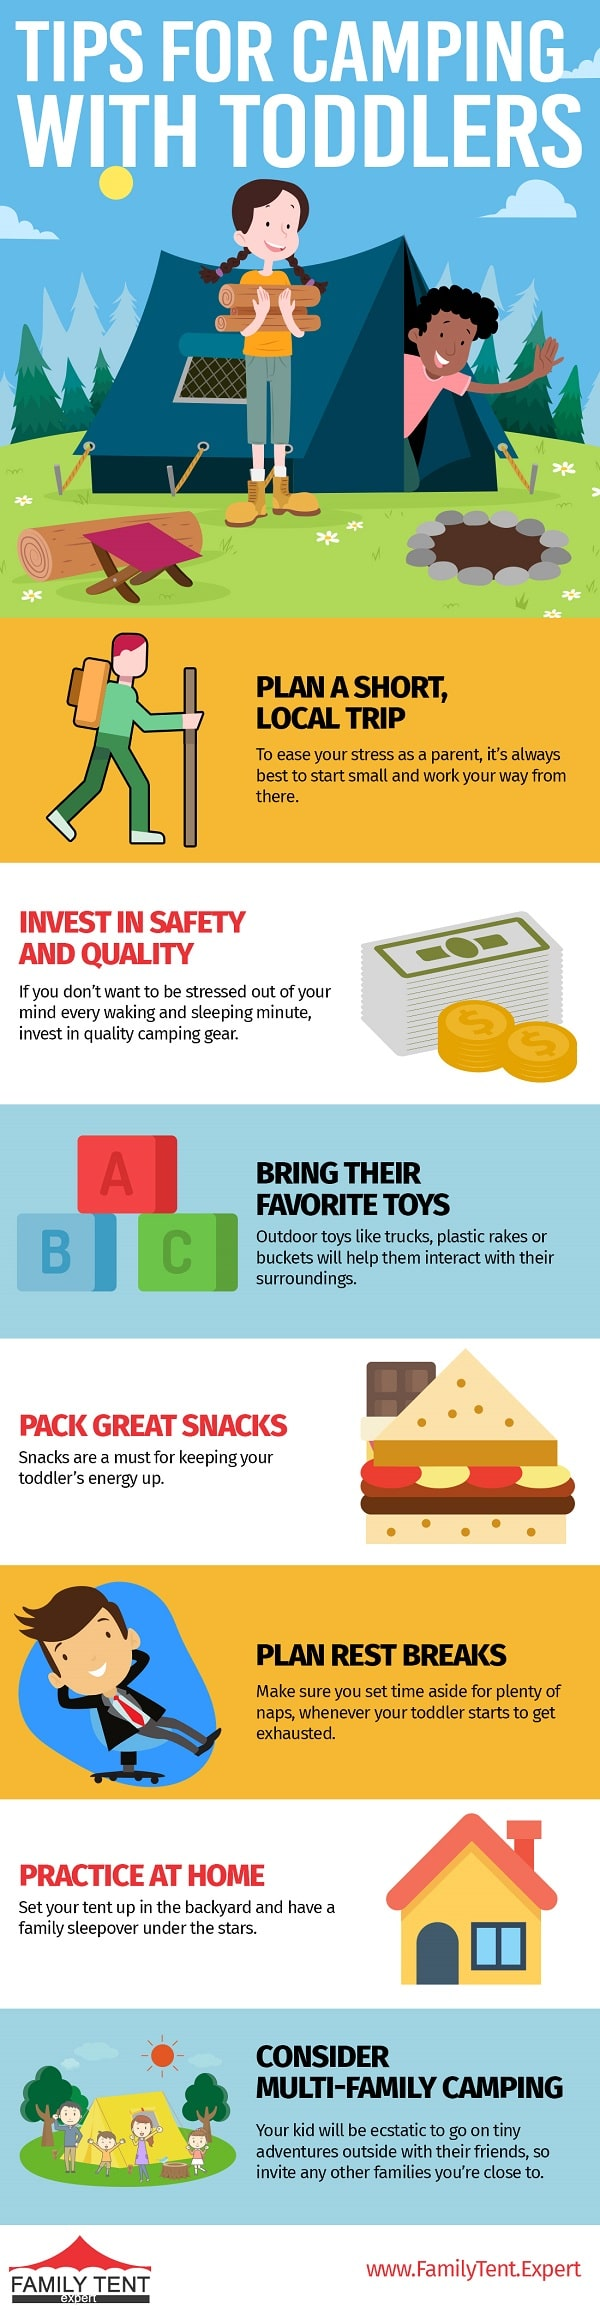 tips for camping with toddlers